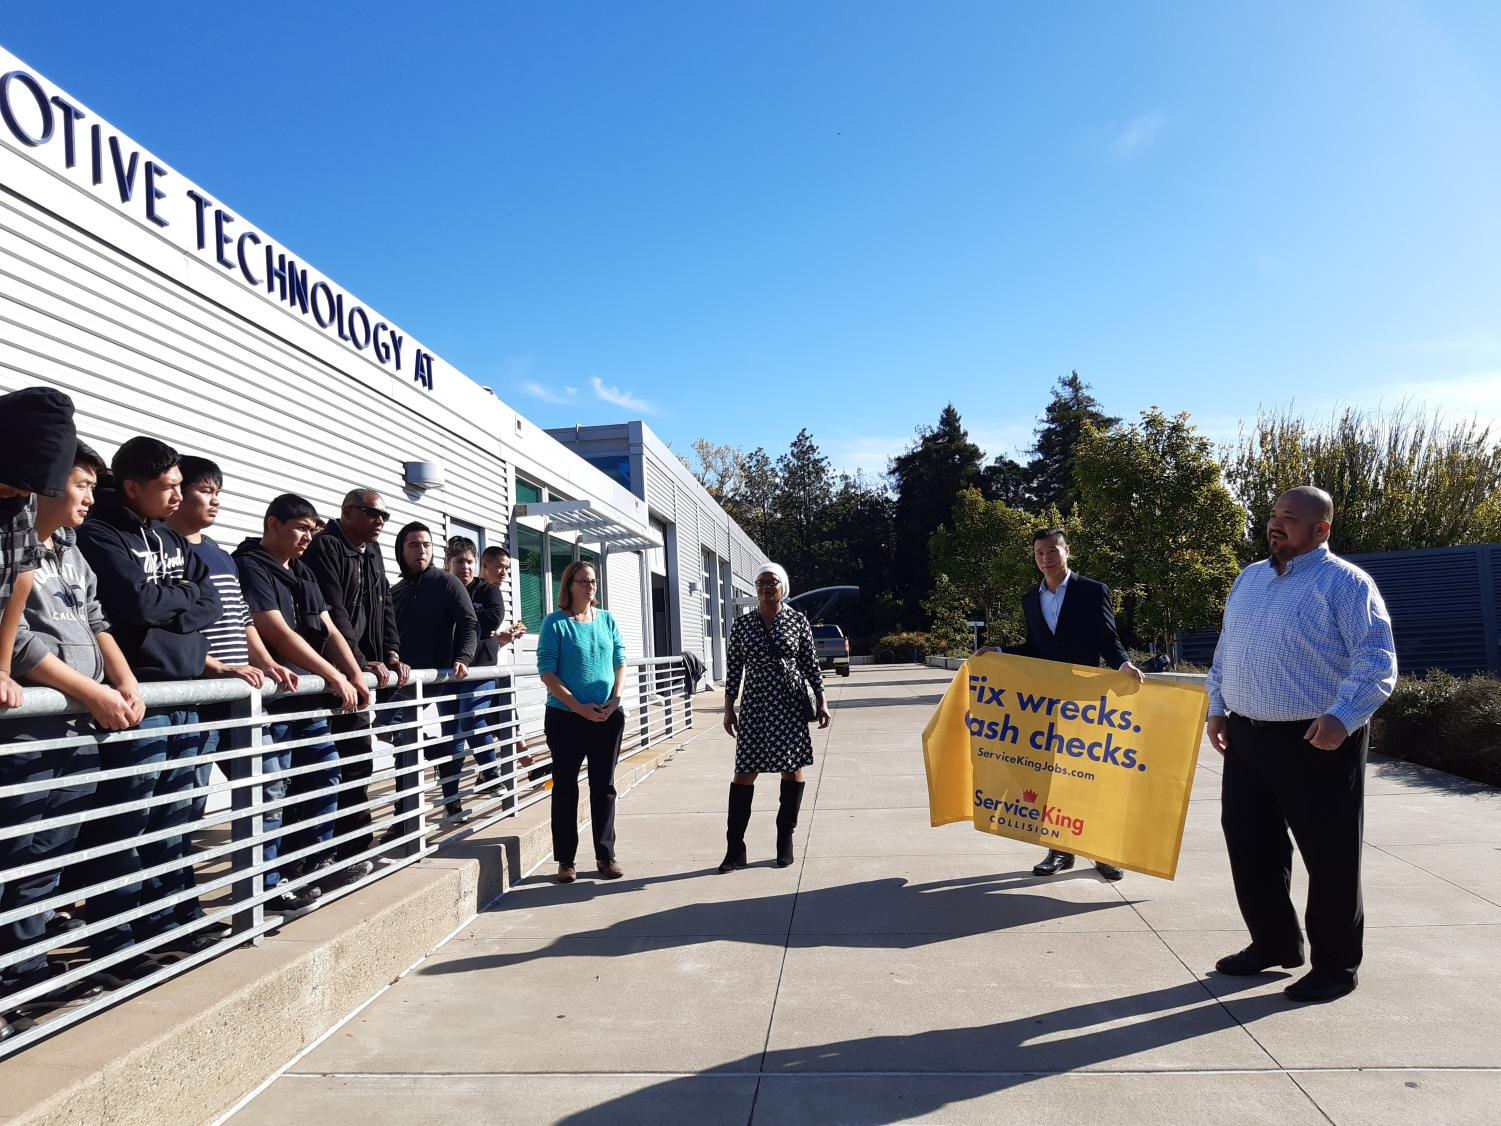 Roy Villarreal, learning program director of Service King Collision Repair (far right), speaks words of advice to collision repair students at a ceremony where he presented a $5,000 check to the CCC automotive department on Dec. 3.